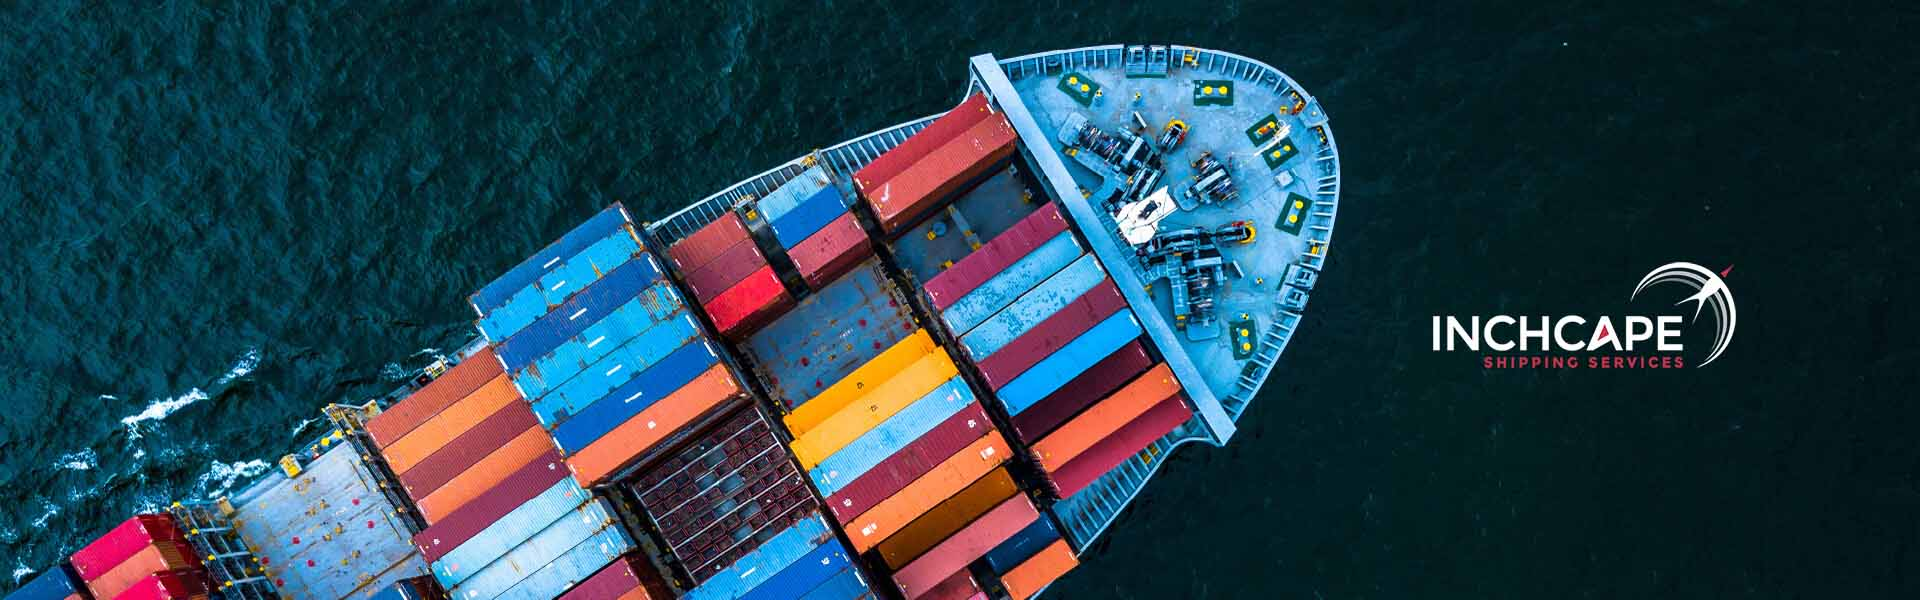 Hexaware Featured in Business Focus Magazine for Strong Partnership with Inchcape Shipping Services